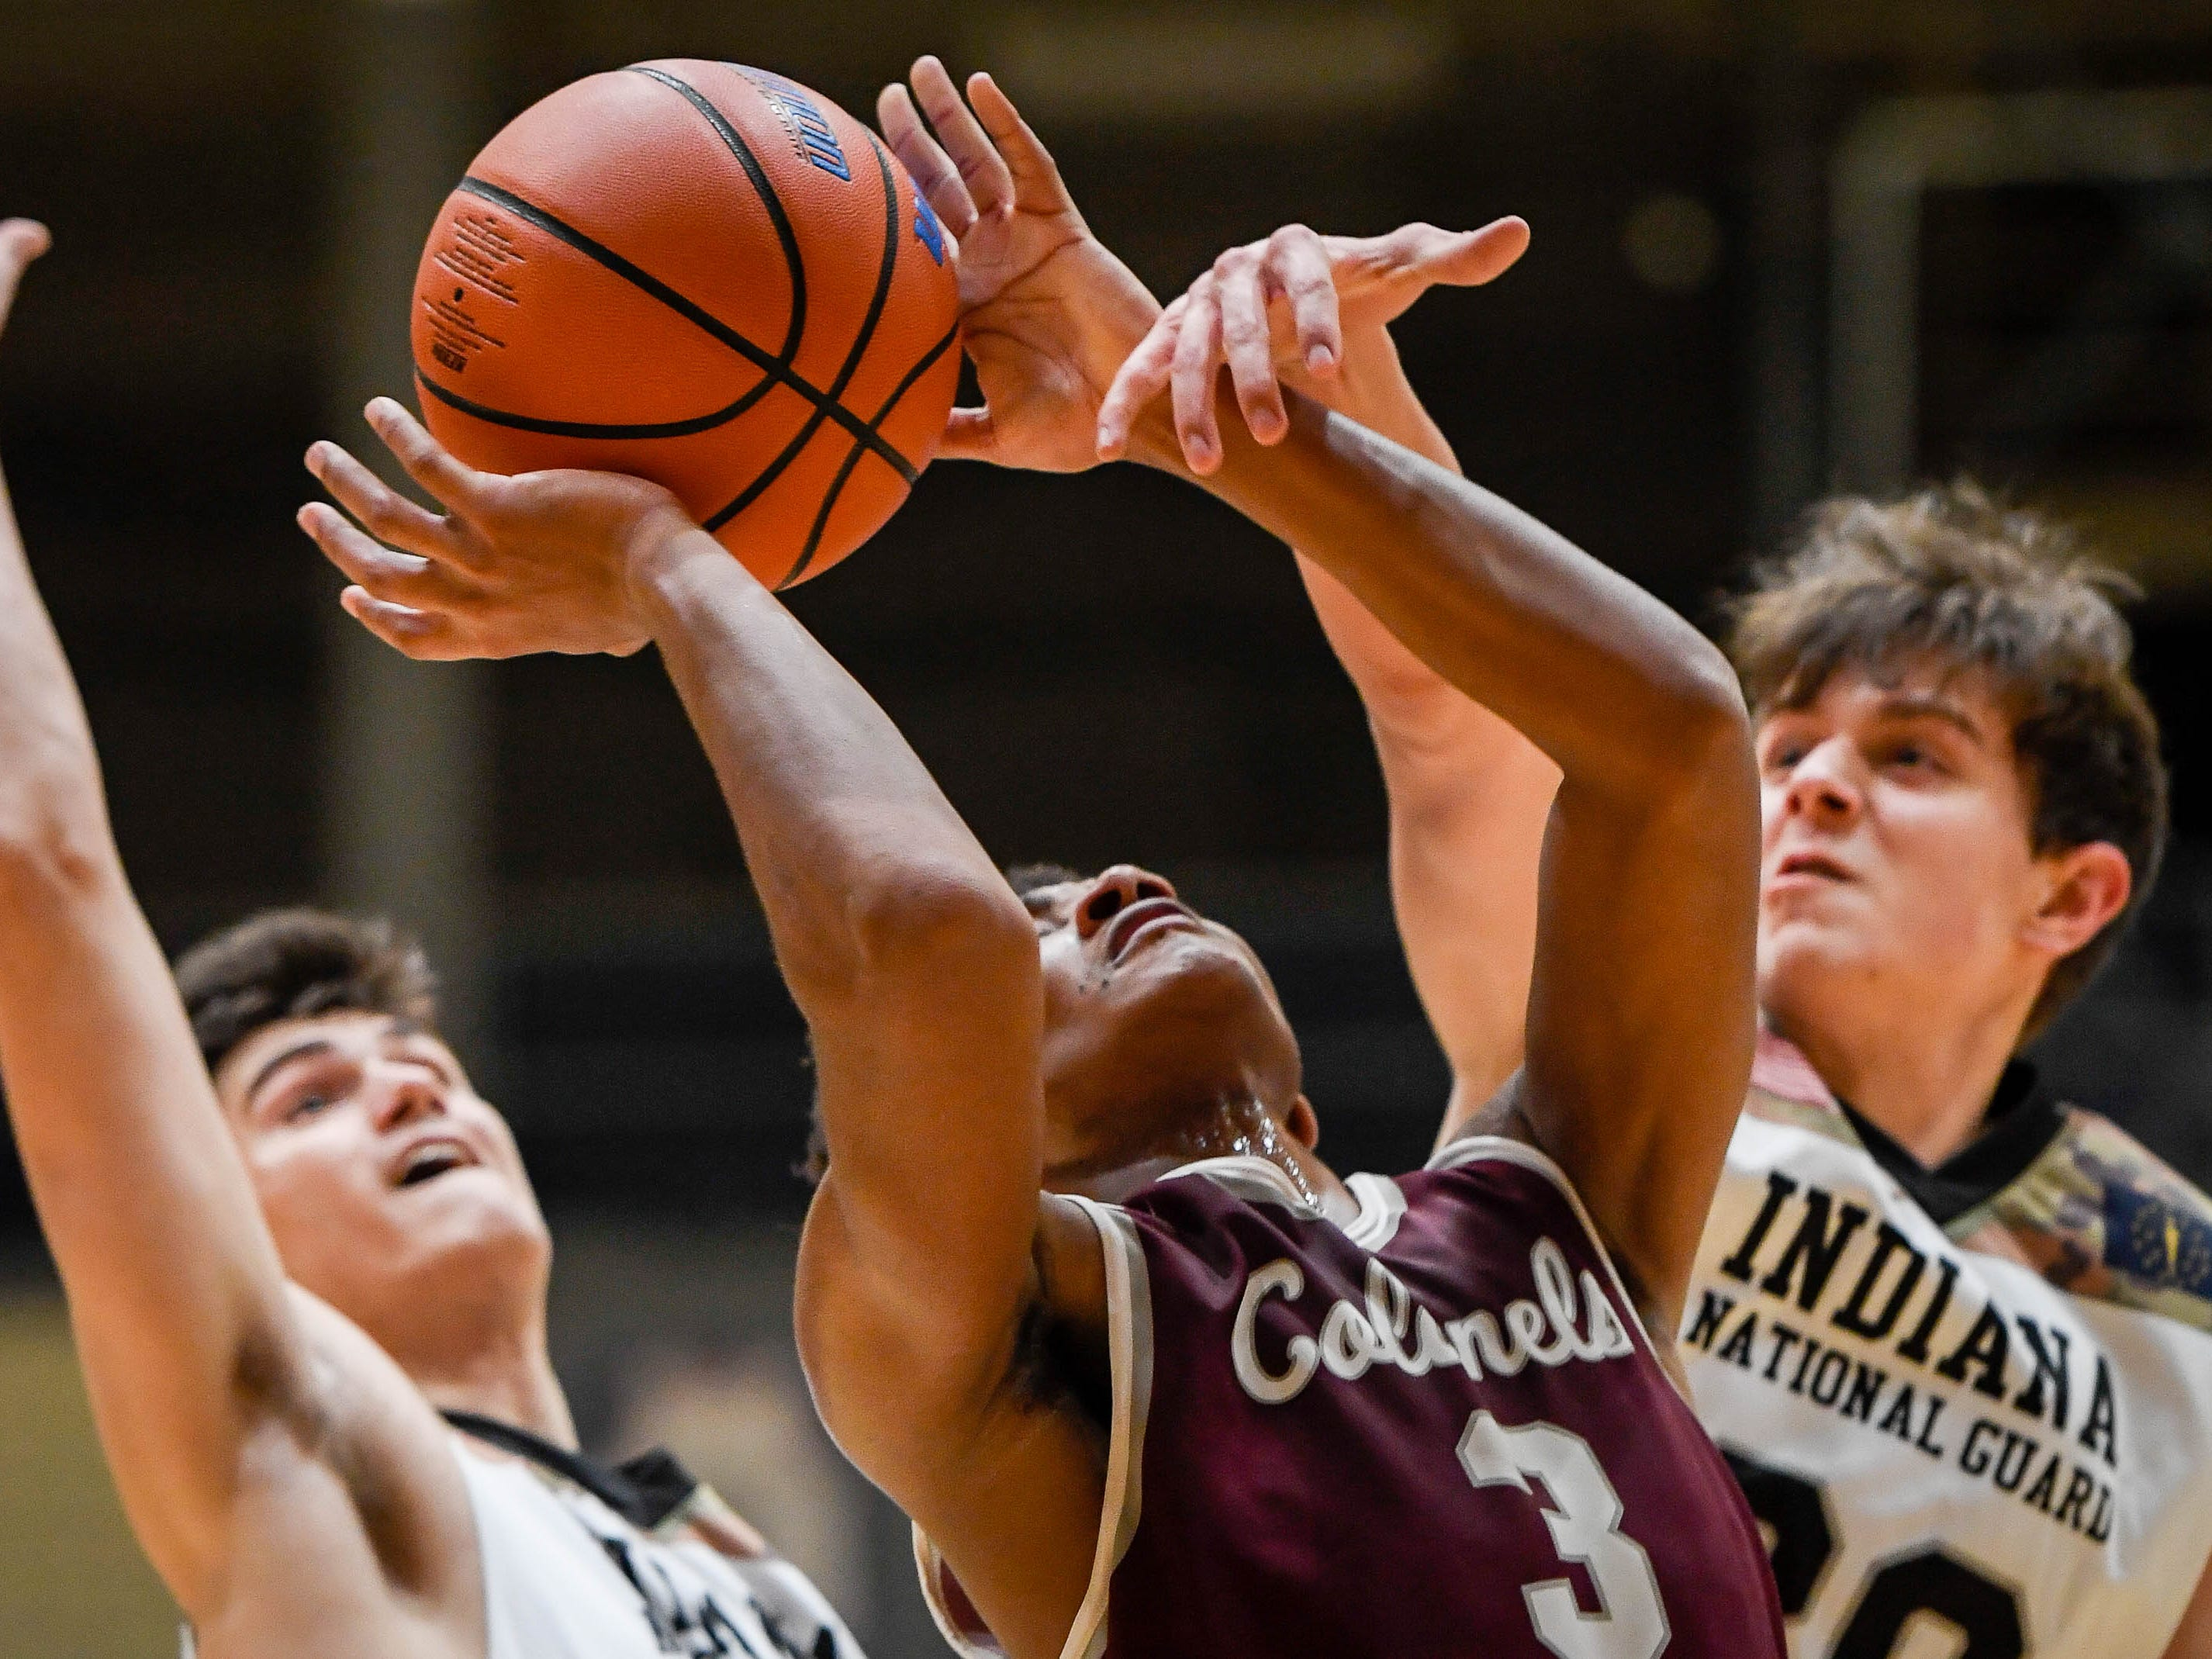 Henderson's Daymian Dixon (3) looks to shoot past defense from Castle's Louis Brock (34), left, and Castle's Bob Nunge (20) as the Castle Knights play the Henderson County Colonels in Paradise Tuesday, January 15, 2019.